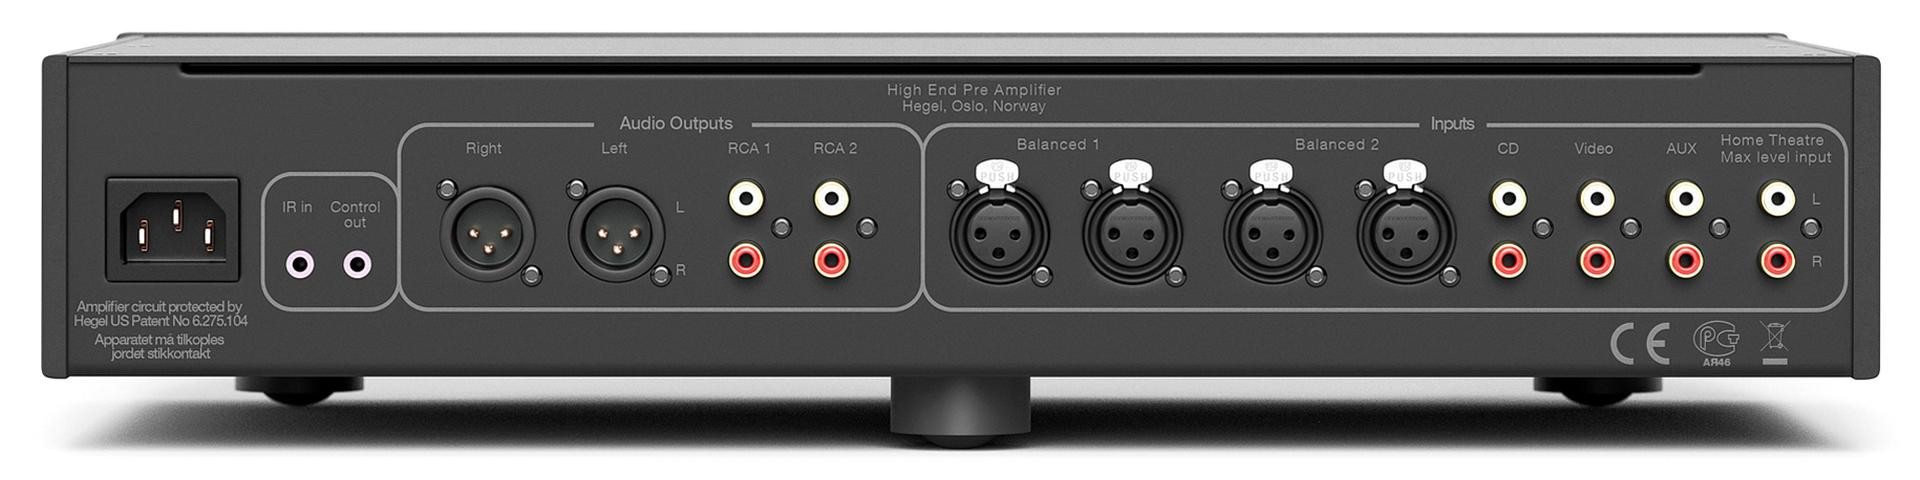 P30 Pre Amplifier Hegel Dealer NJ.j